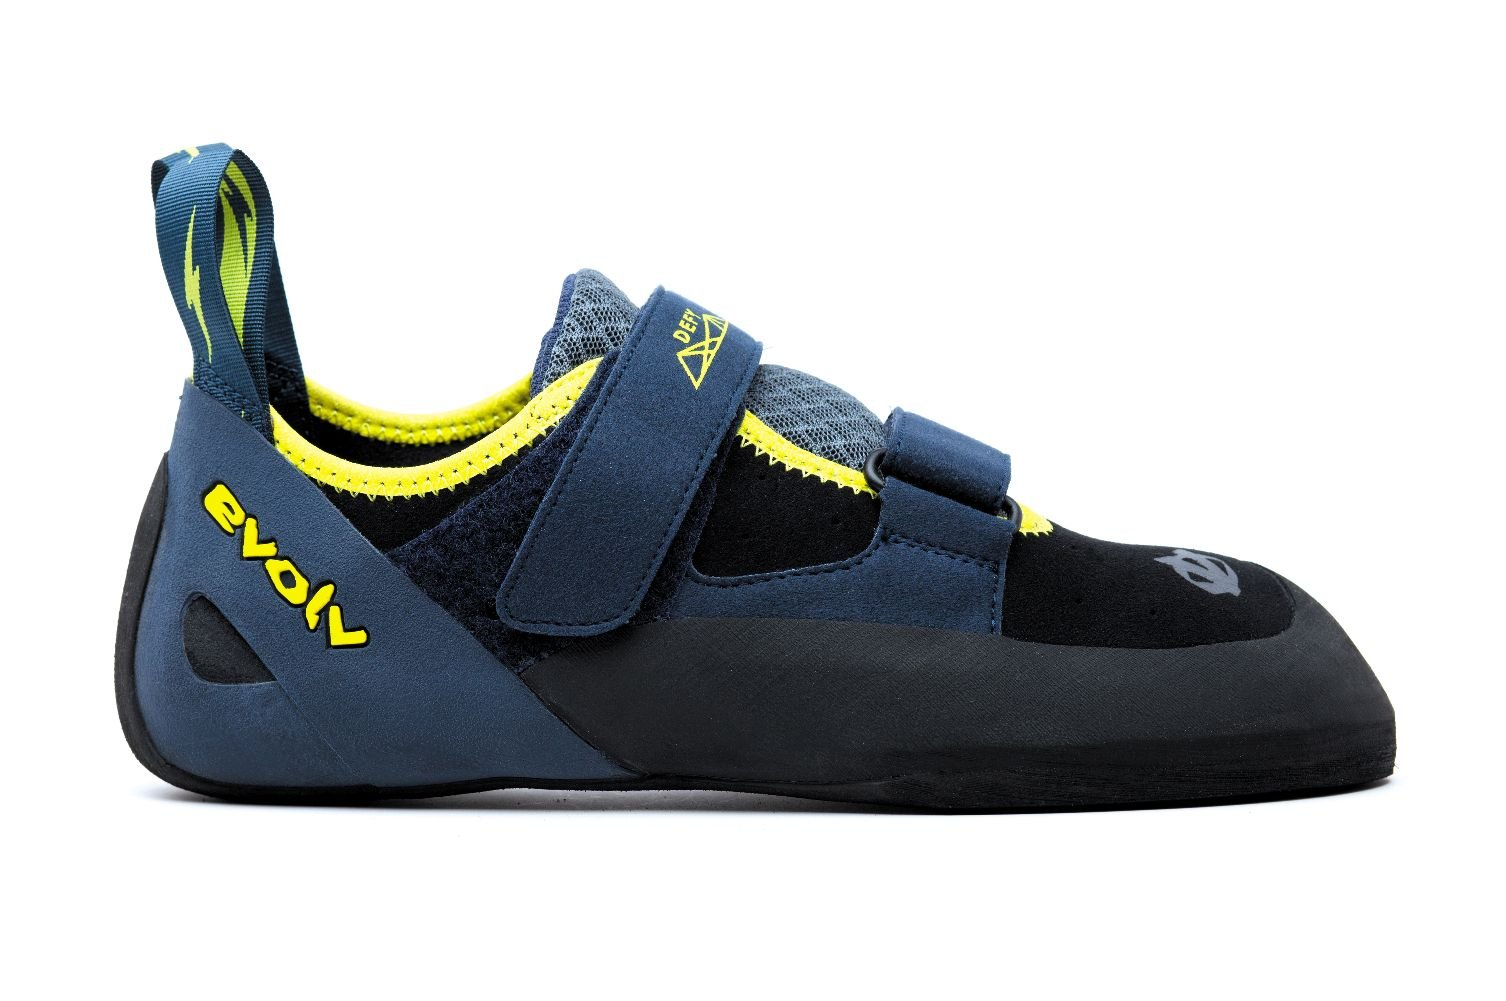 Evolv Defy Climbing Shoe - Black/Sulphur 7 by Evolv